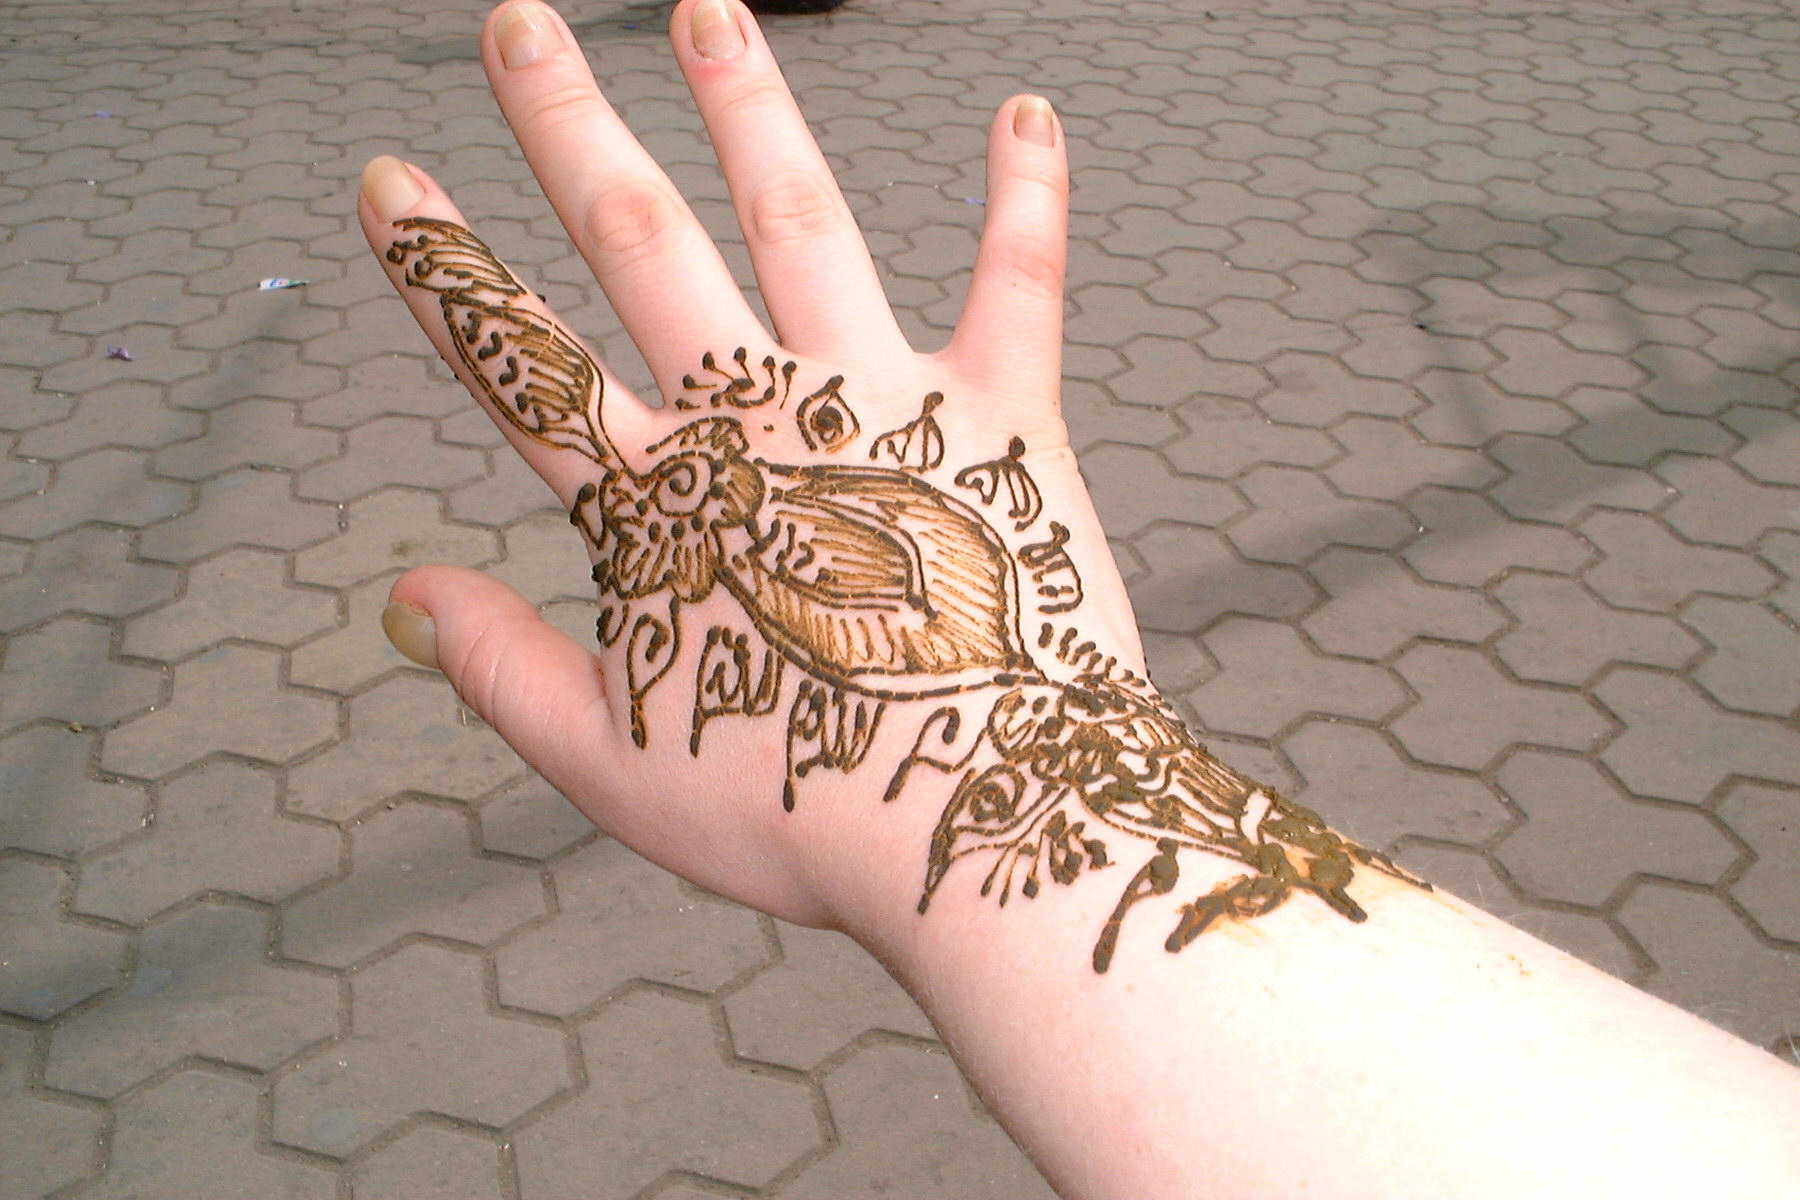 My hand with henna (Marrakech, Morocco 22-05-2004) (purpose of page is to display an image)